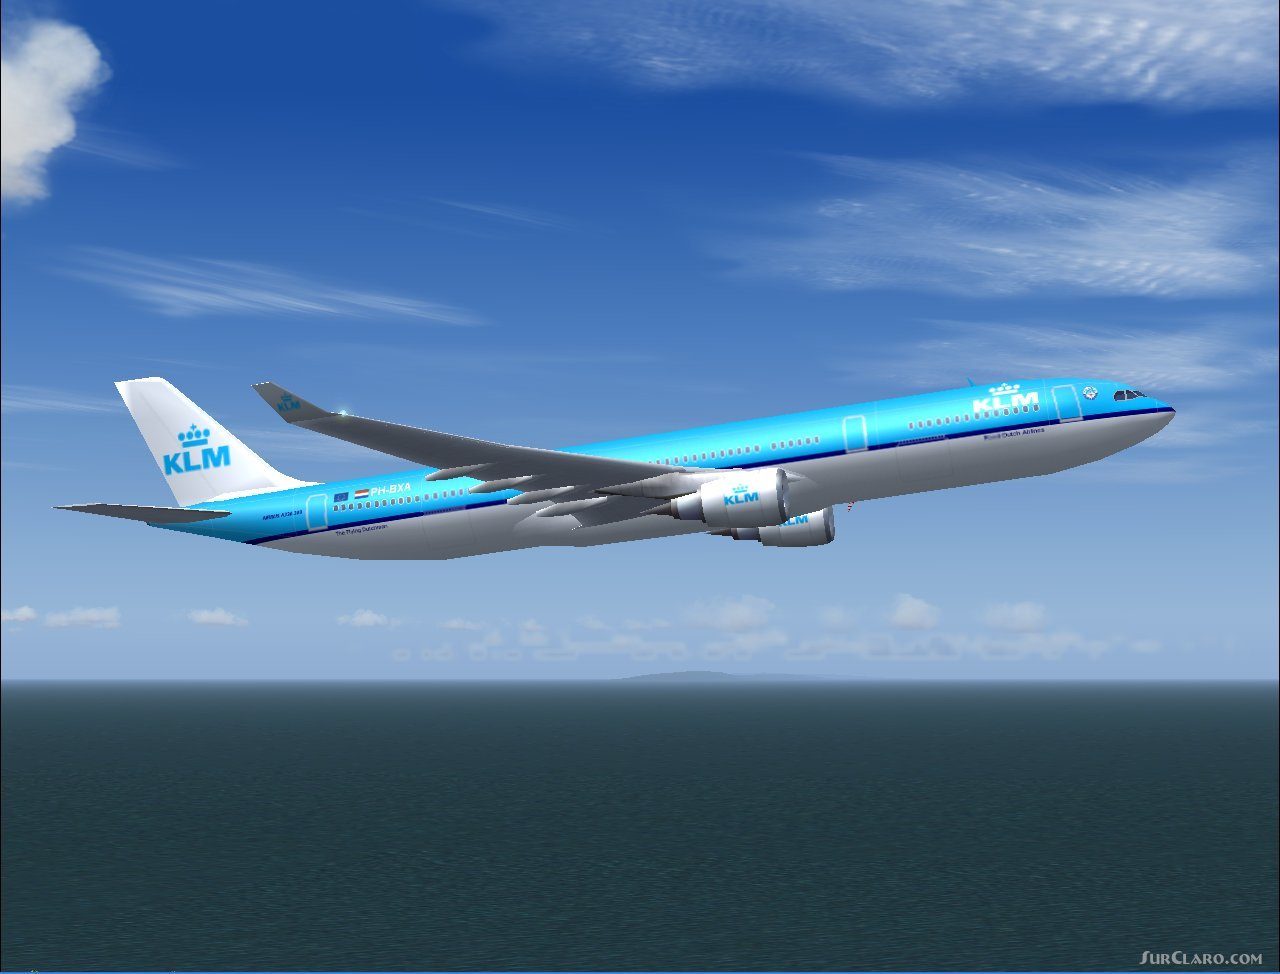 FS2002 Airbus A330-300ge Klms New Livery Fs Painters